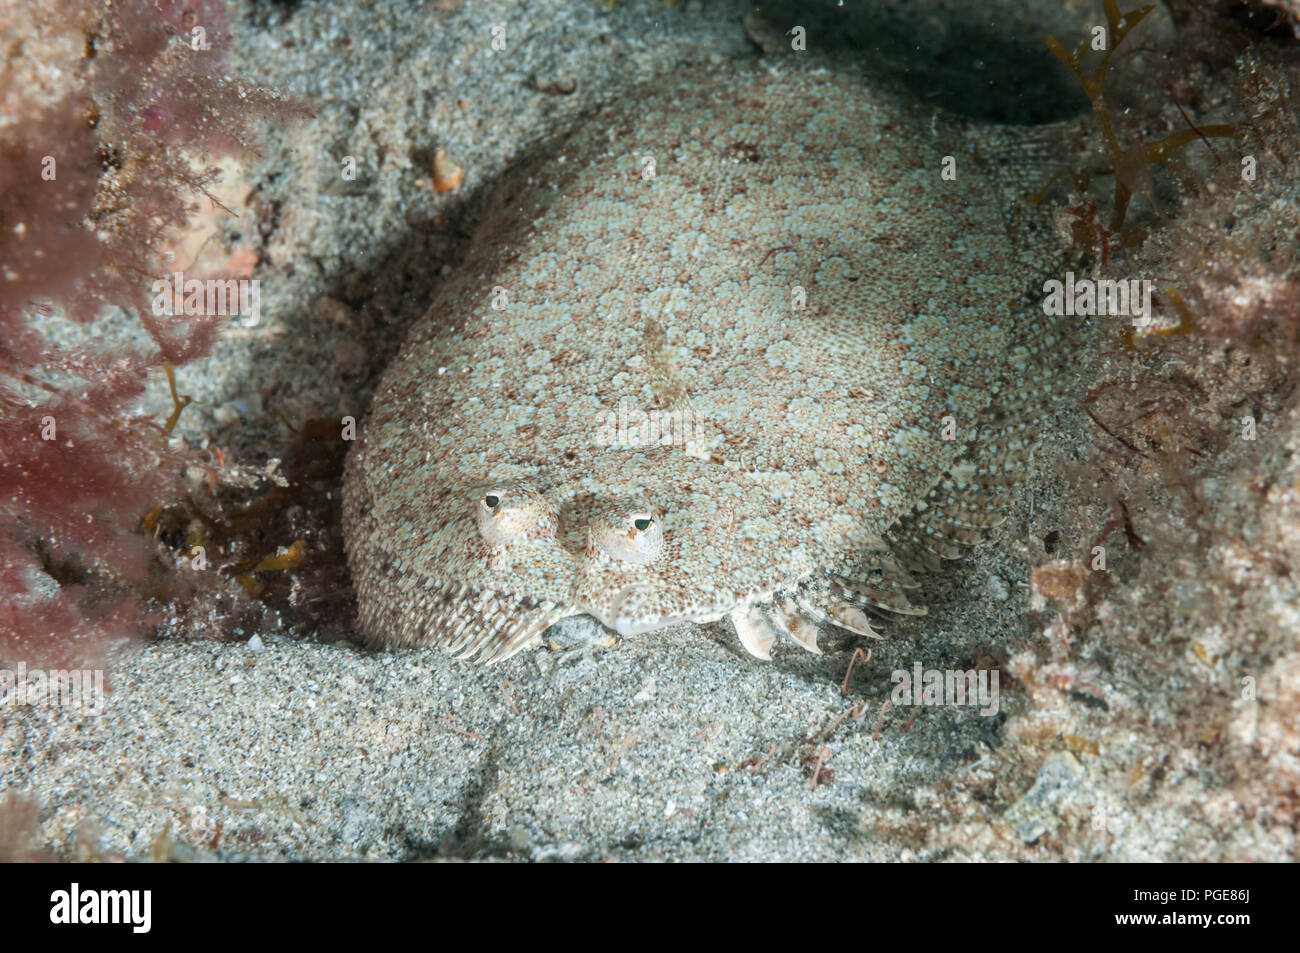 wide-eyed flounder, Bothus podas, La Graciosa, Canary Islands, Spain - Stock Image